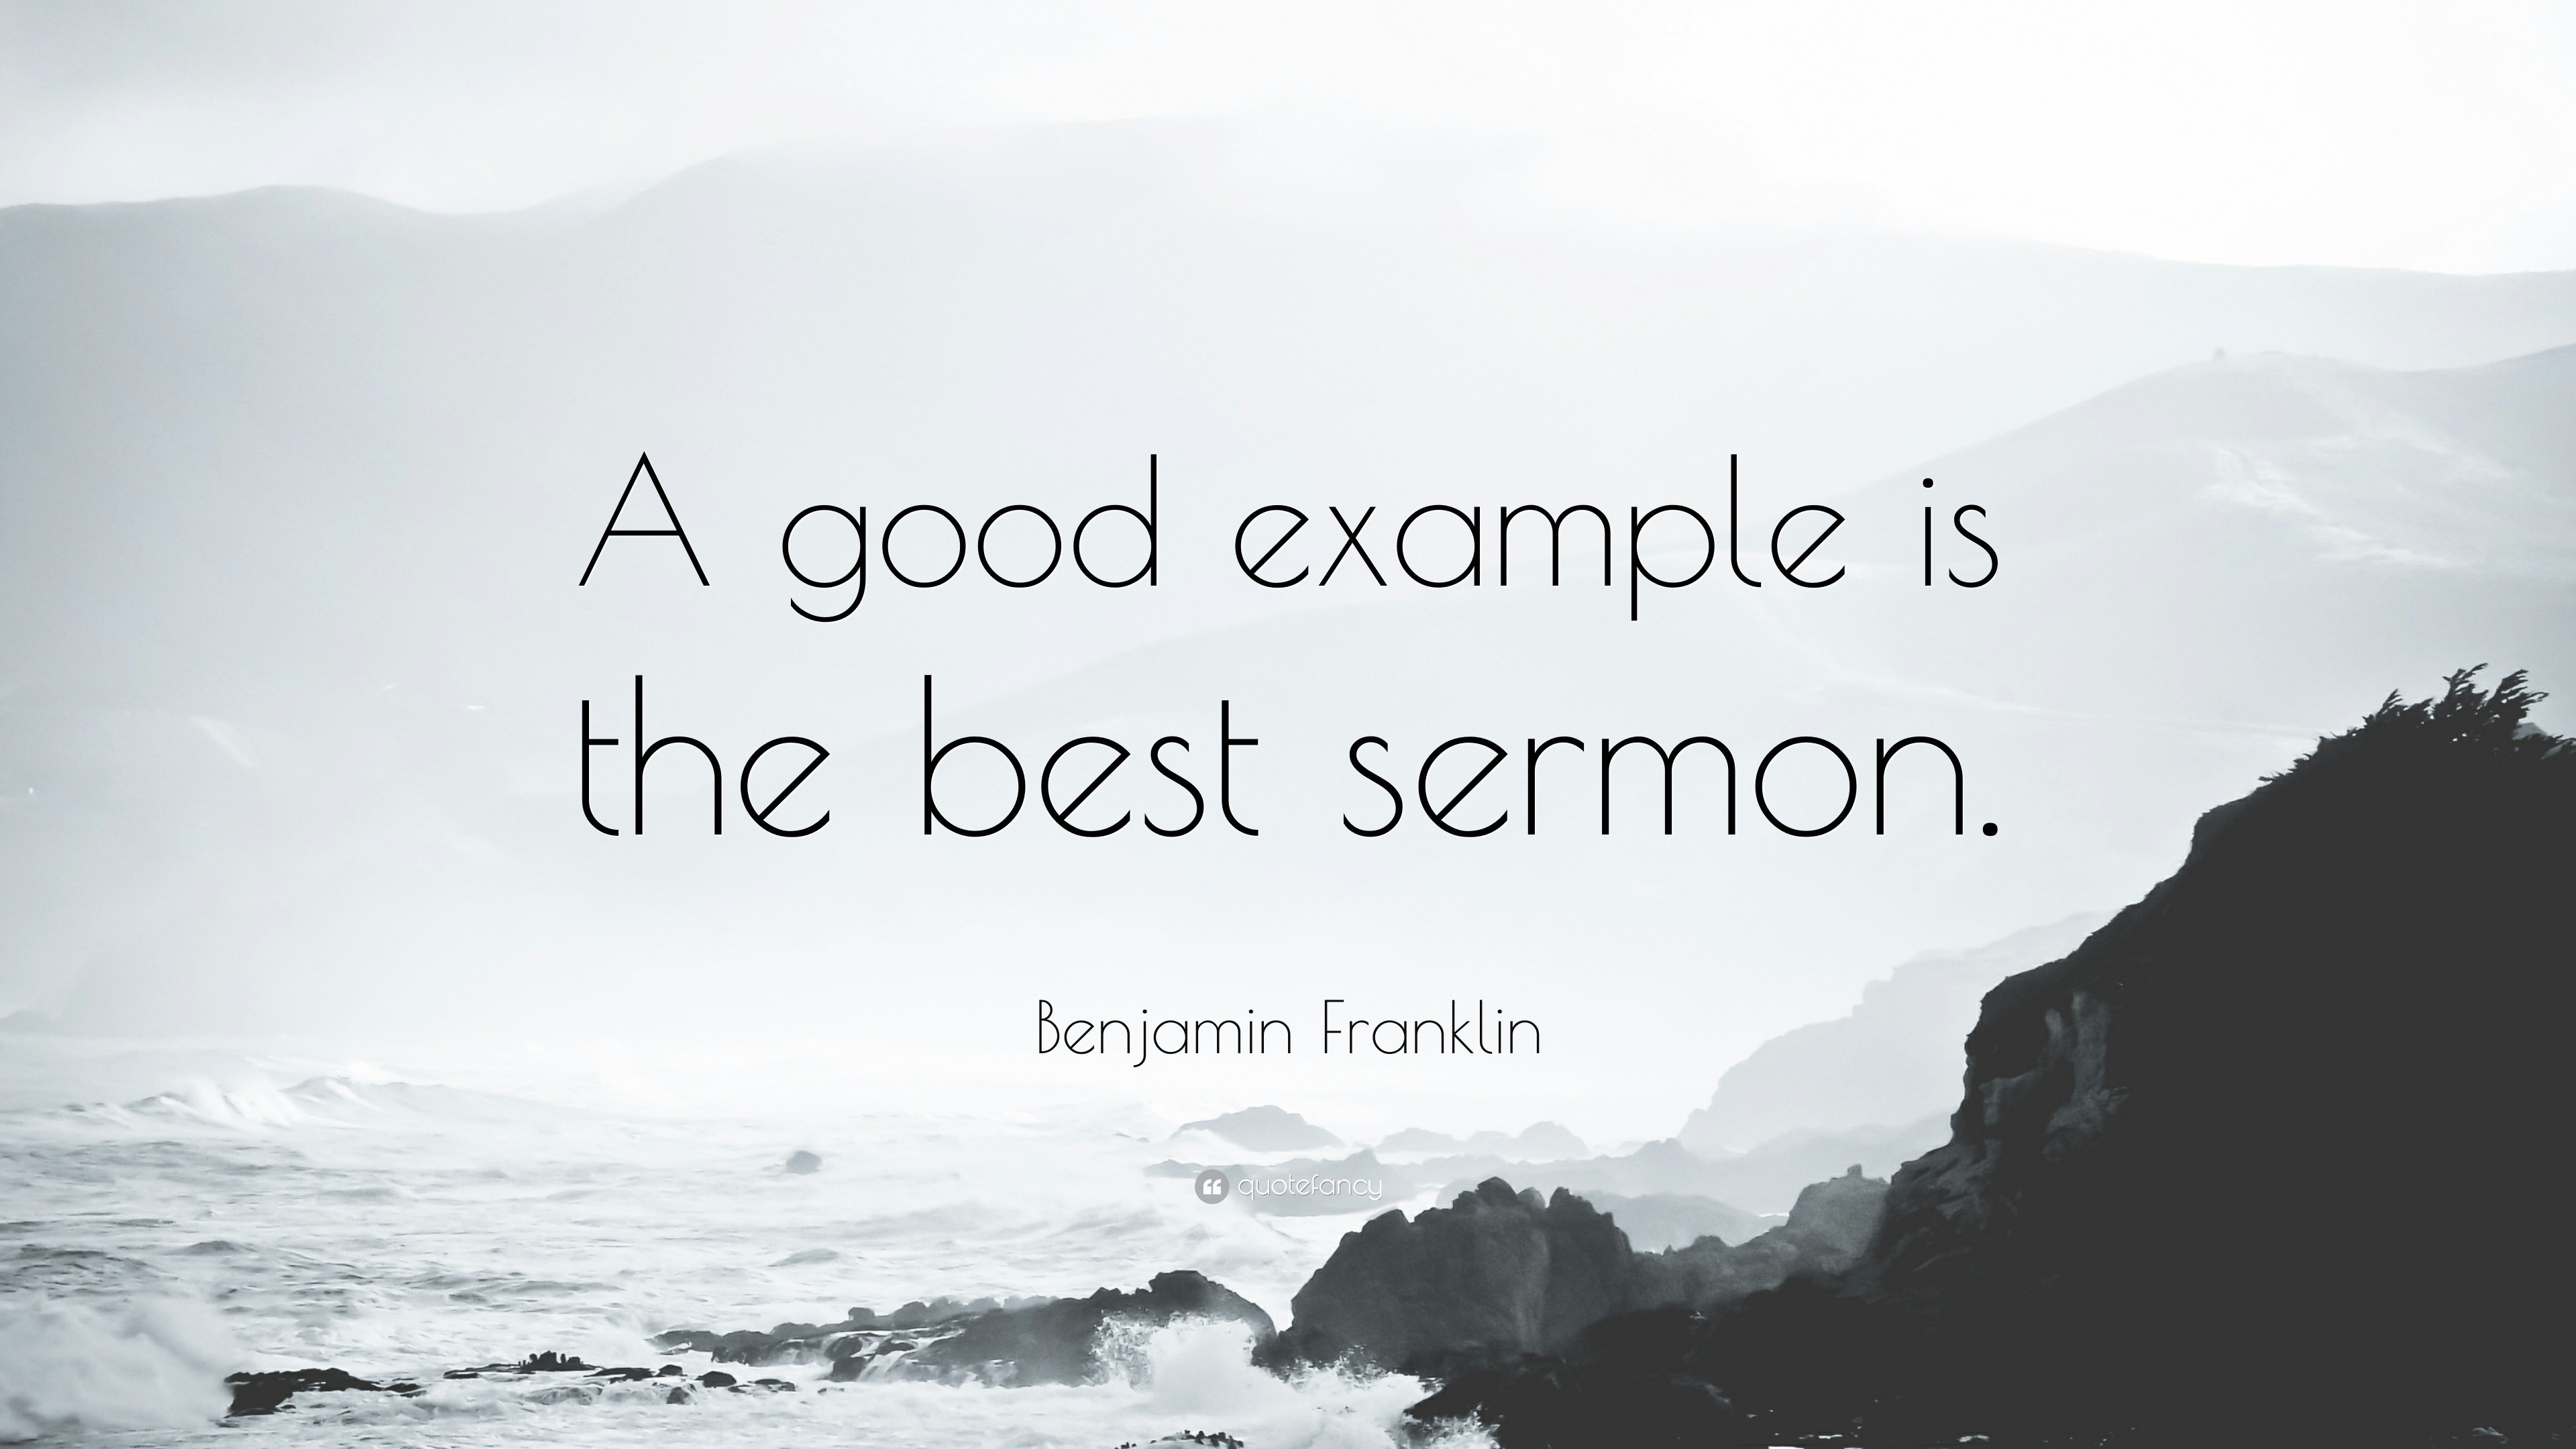 A Good Example Is The Best Sermon | World Of Example for A Good Example Is The Best Sermon 18741